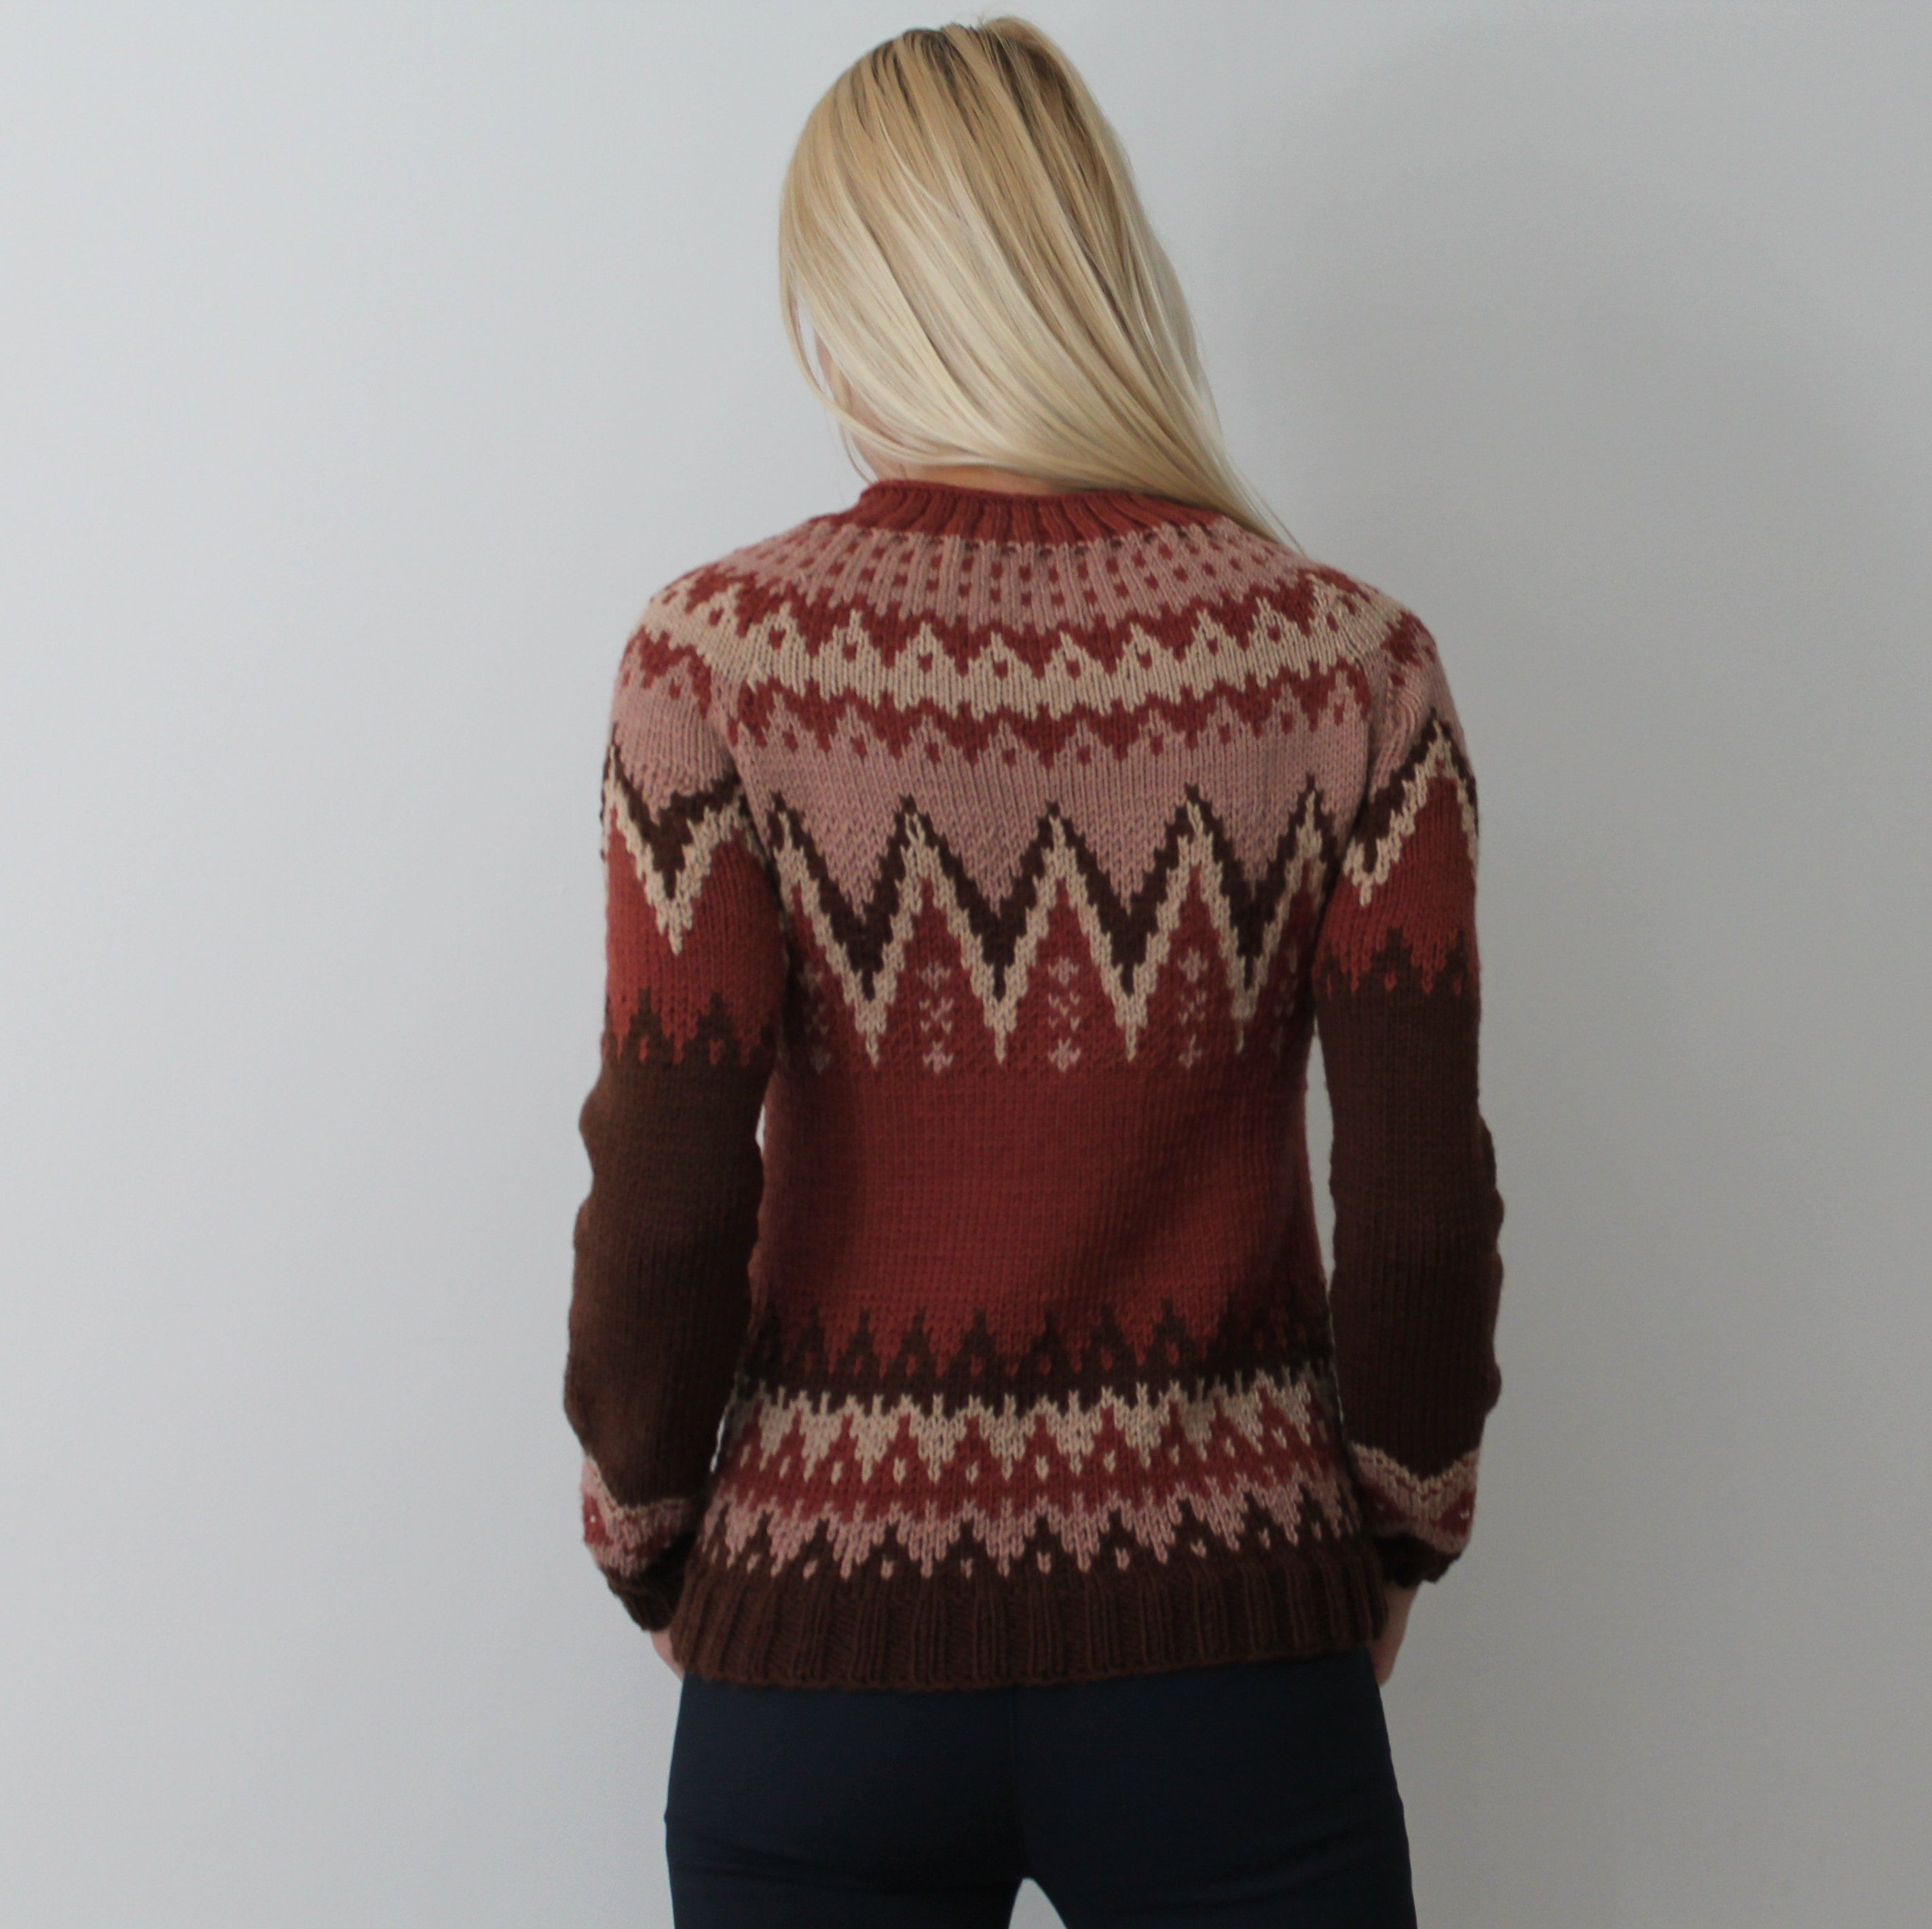 Hand Knit Nordic Fair Isle Wool Sweater Lopapeysa Norwegian Jacquard Sweater Scandinavian Hiking Knitted Cozy Sweaters For Women Jumpers And Cardigans Sweaters